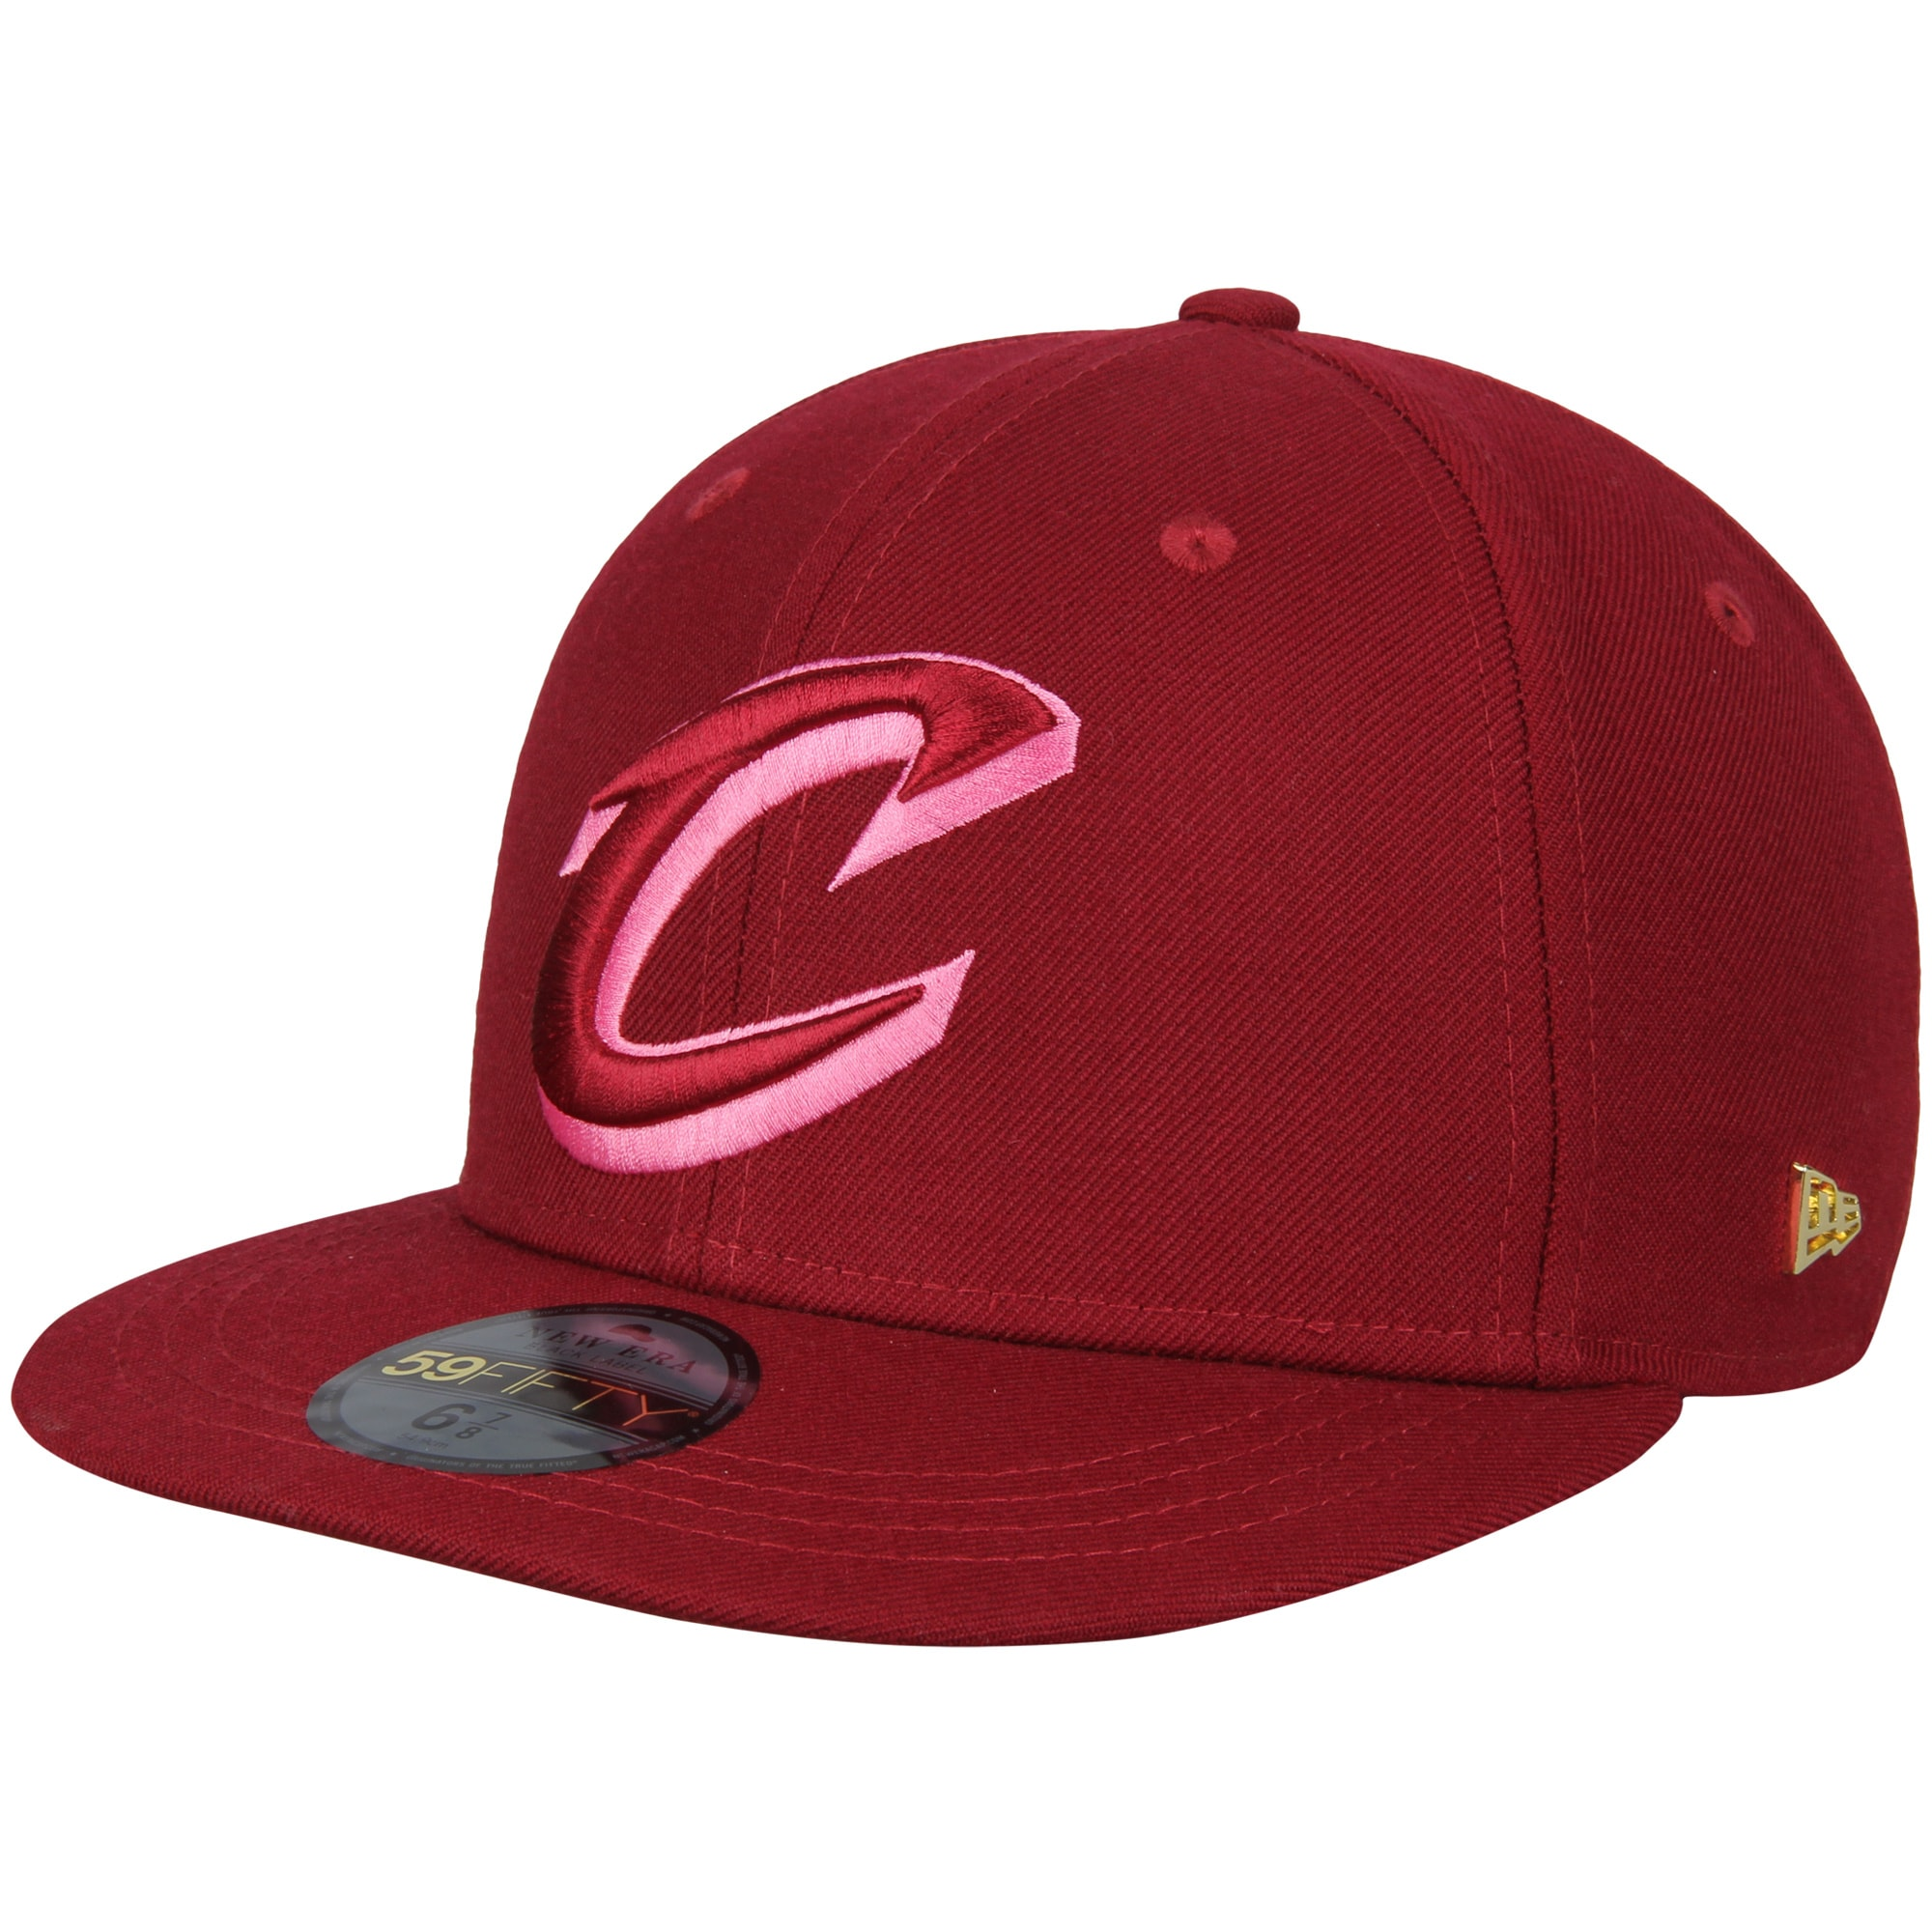 Cleveland Cavaliers New Era Essential Black Label Series 59FIFTY Fitted Hat - Maroon